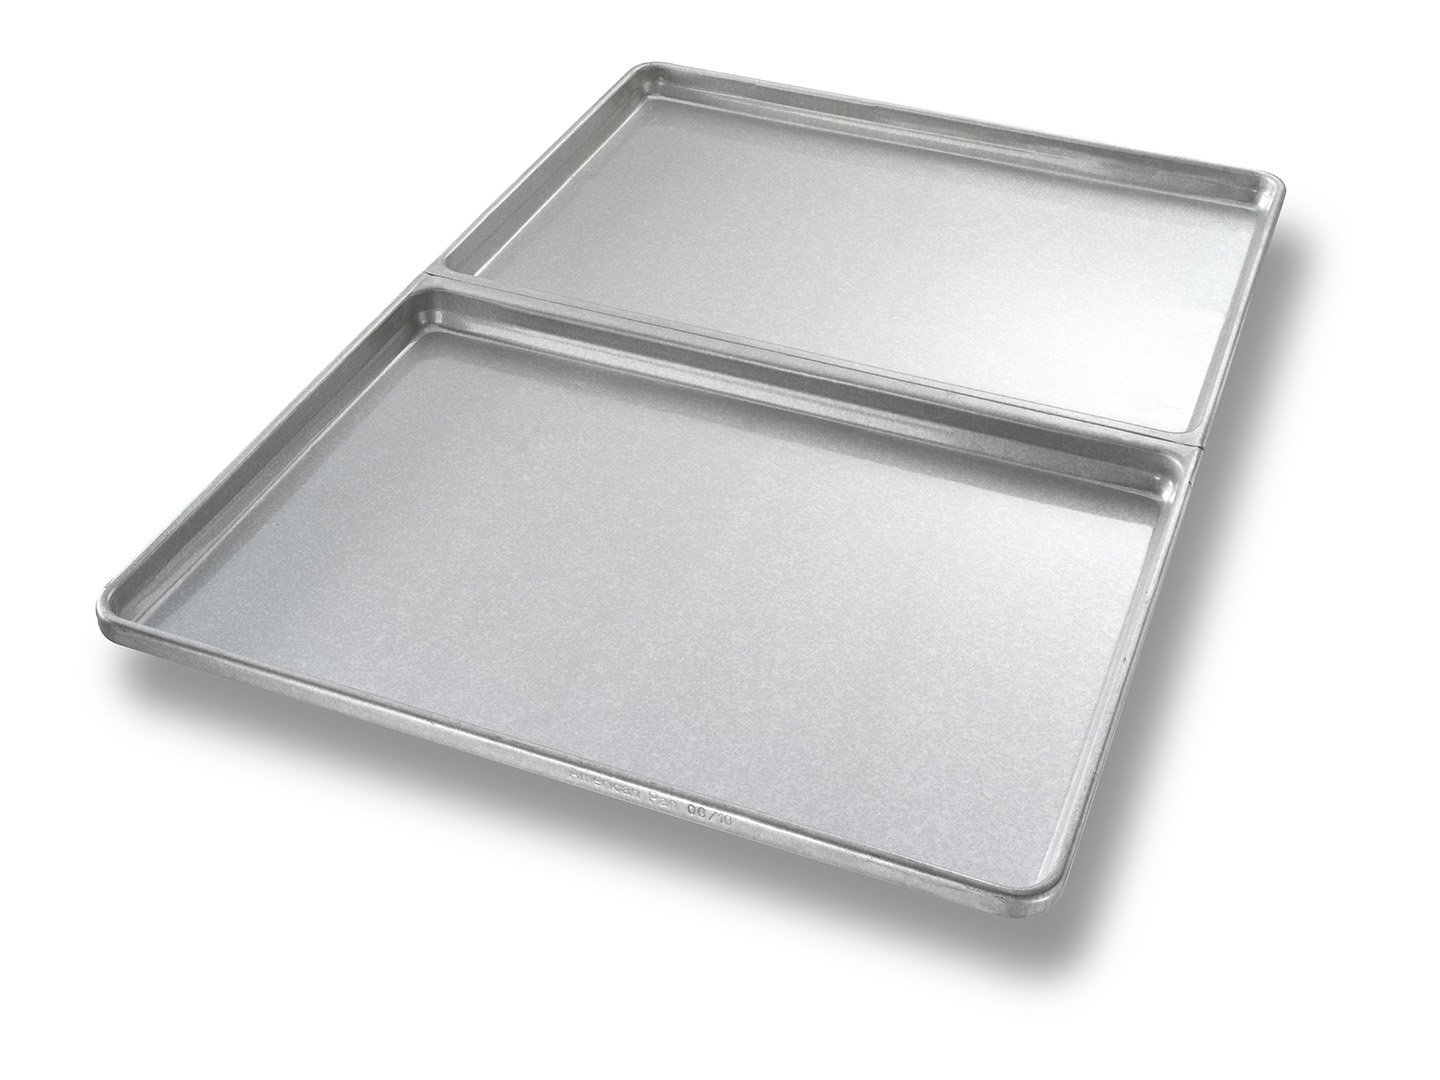 2-On Sheet Cake Pan – AMERICOAT® Coating